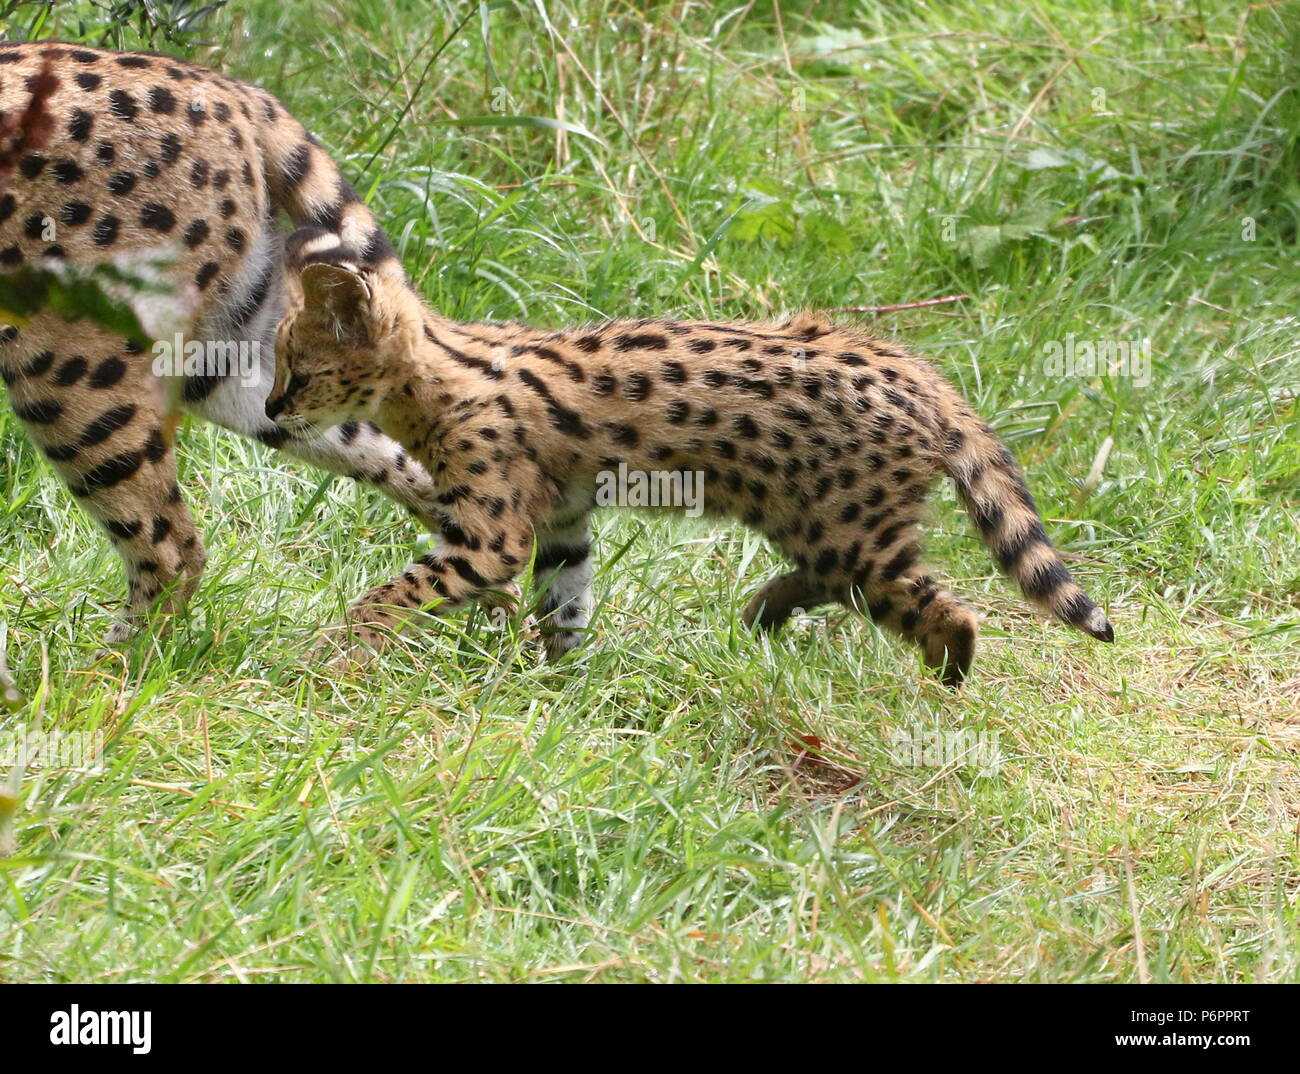 African Serval (Leptailurus serval) cub, walking with his mother Stock Photo